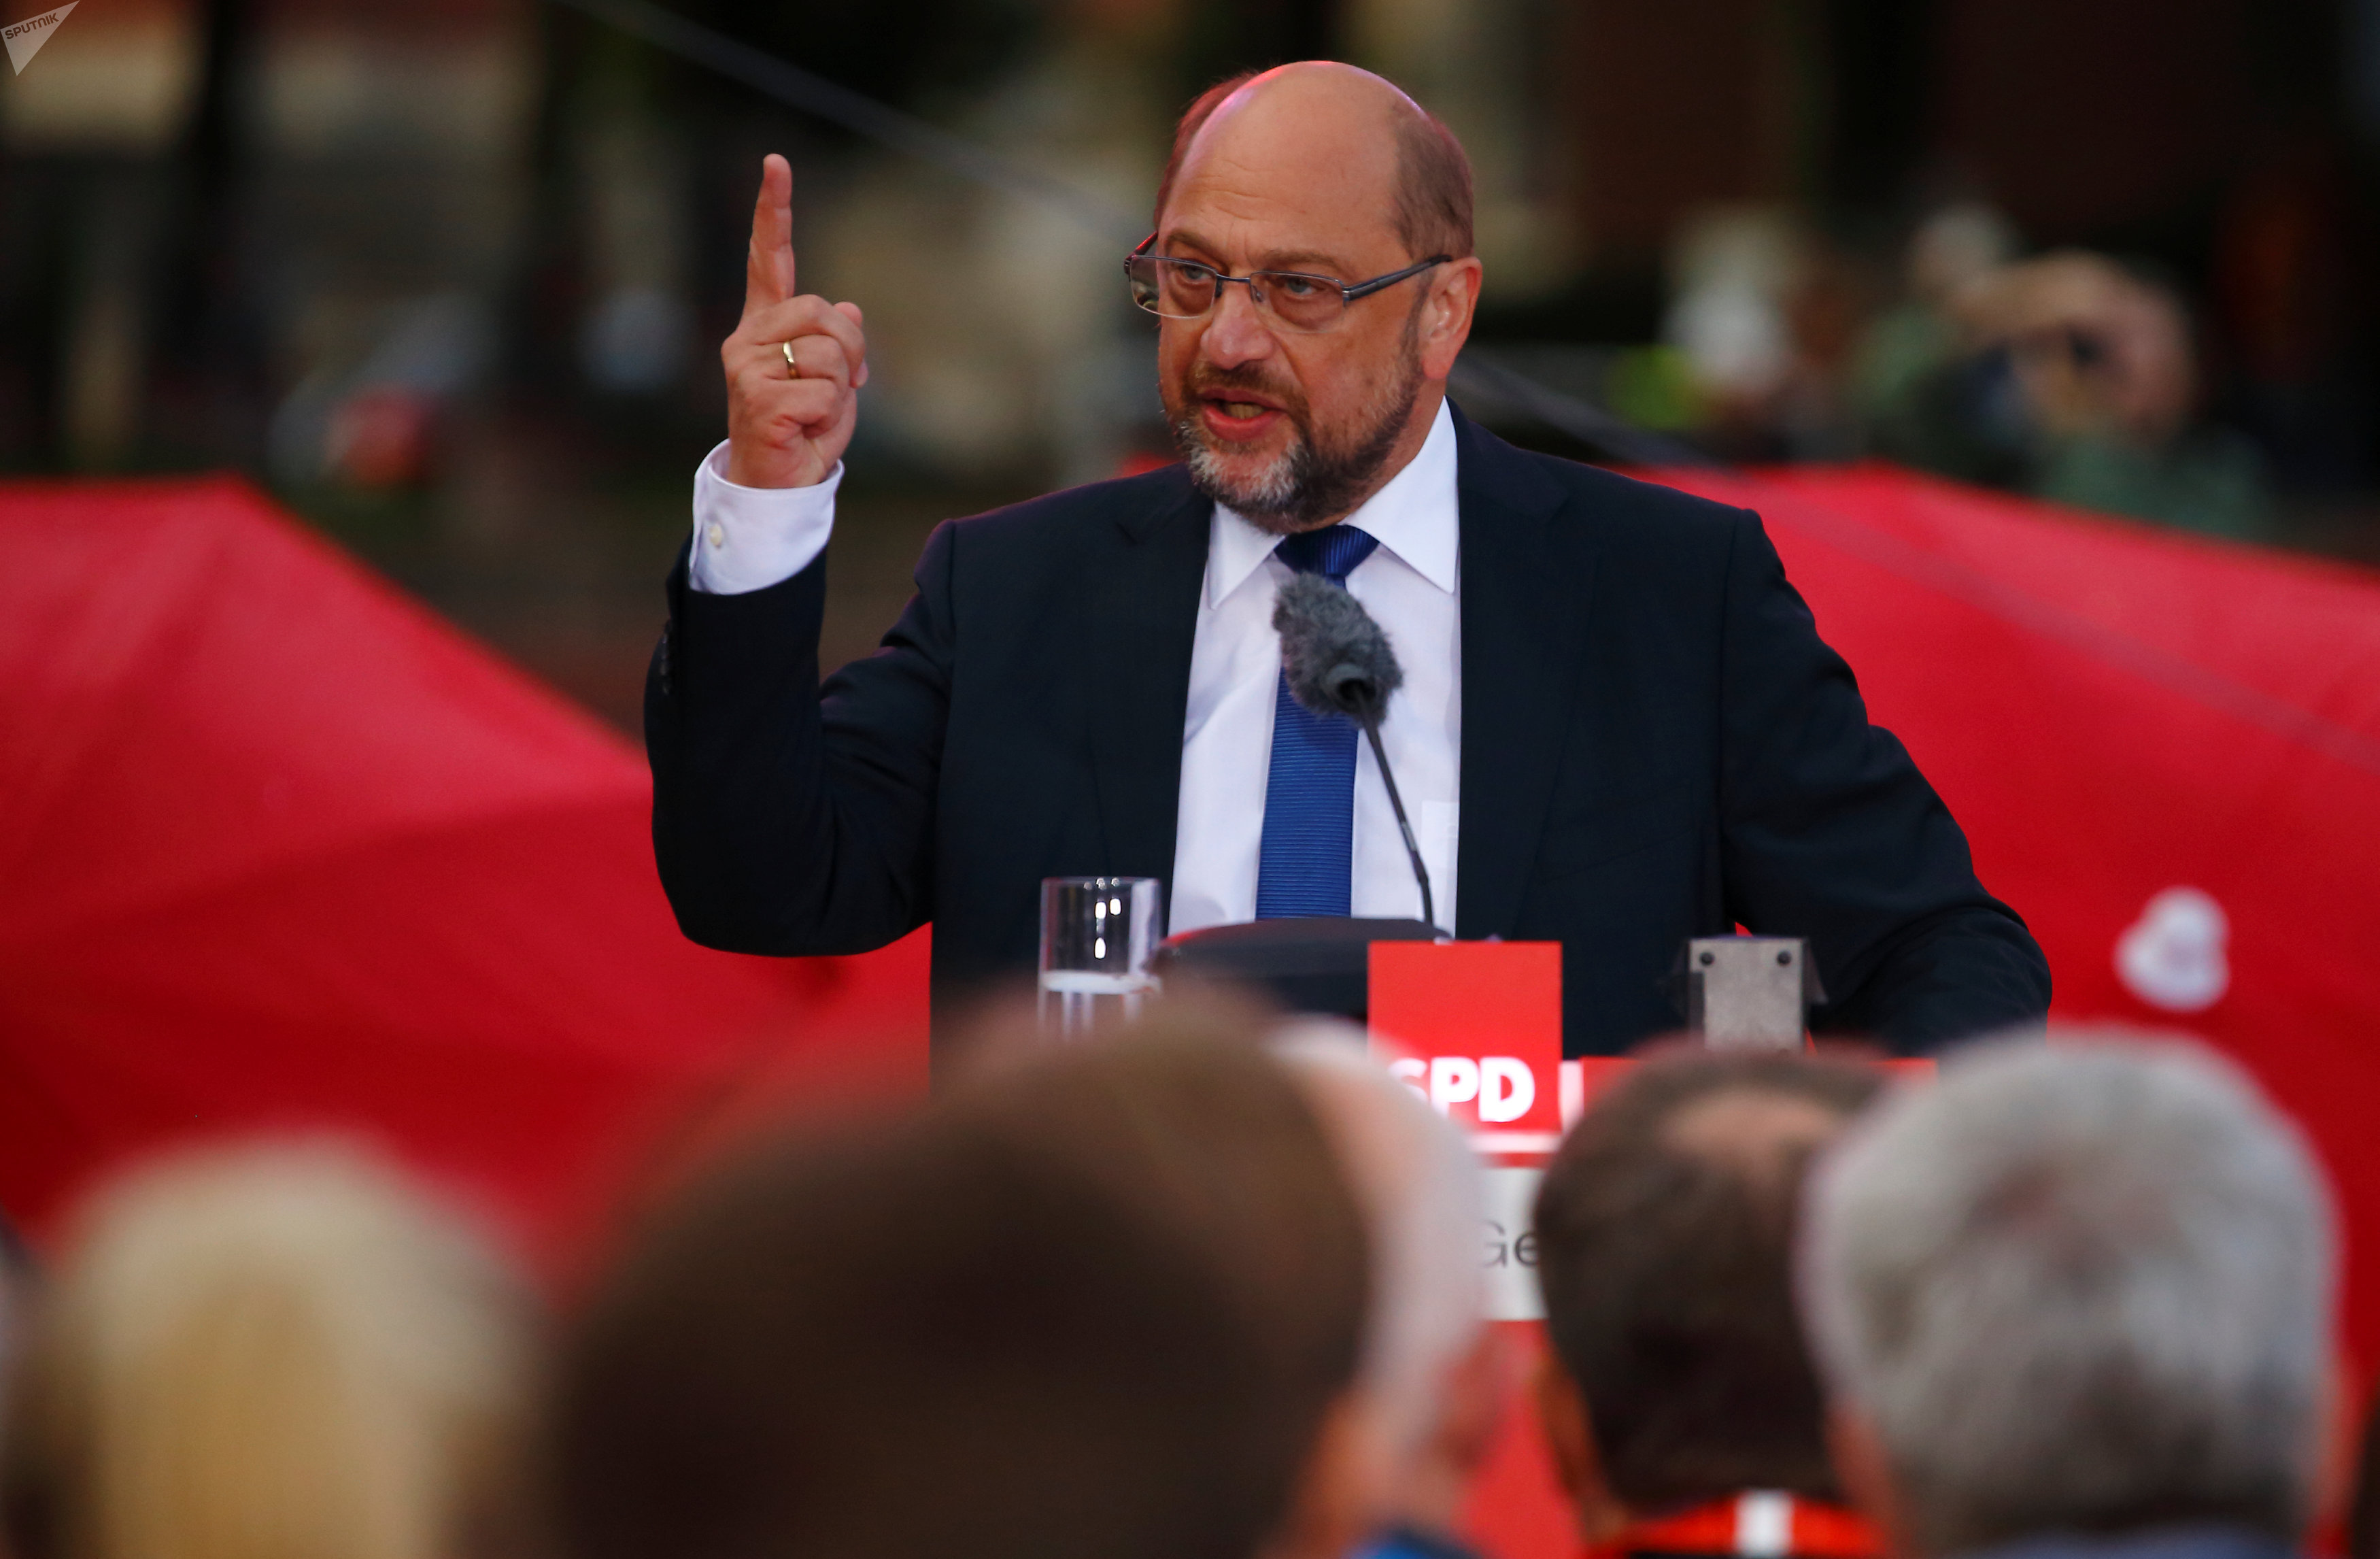 Martin Schulz, top candidate of the Social Democratic Party (SPD) for the upcoming federal election, gives a speech during an election rally in Hamburg, Germany, August 31, 2017